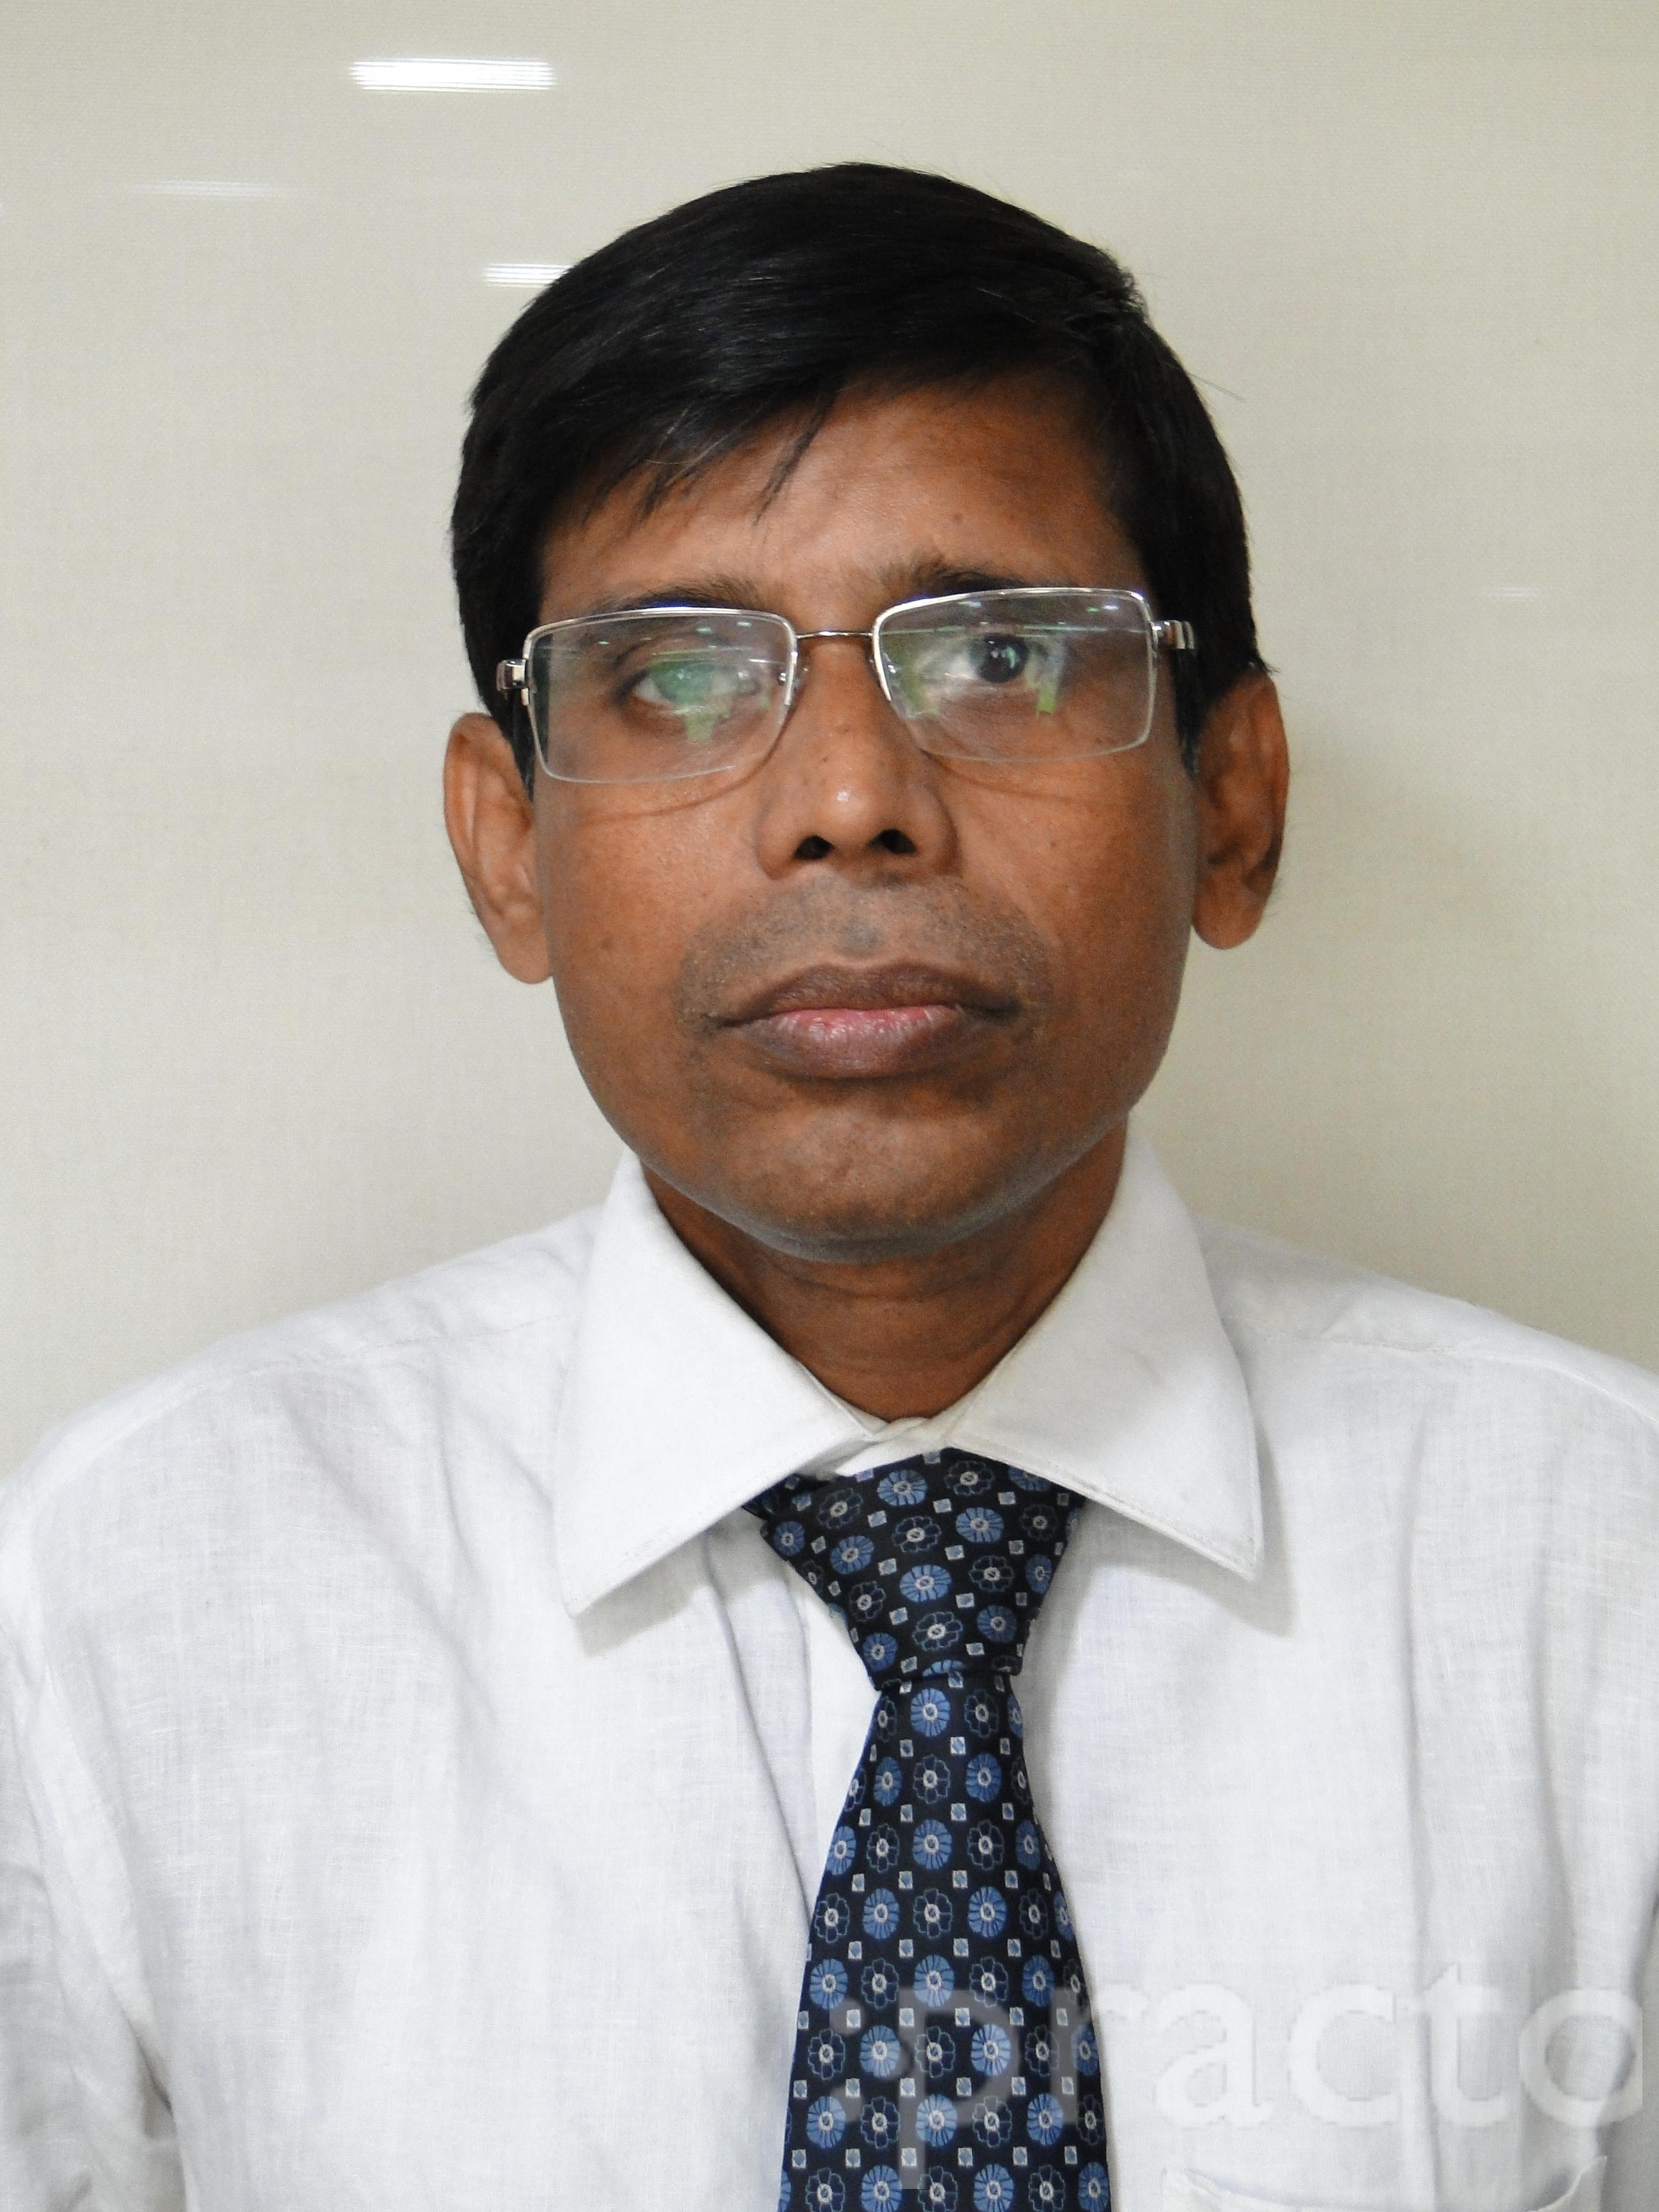 Dr. Biswajyoti Guha - Gynecologist/Obstetrician